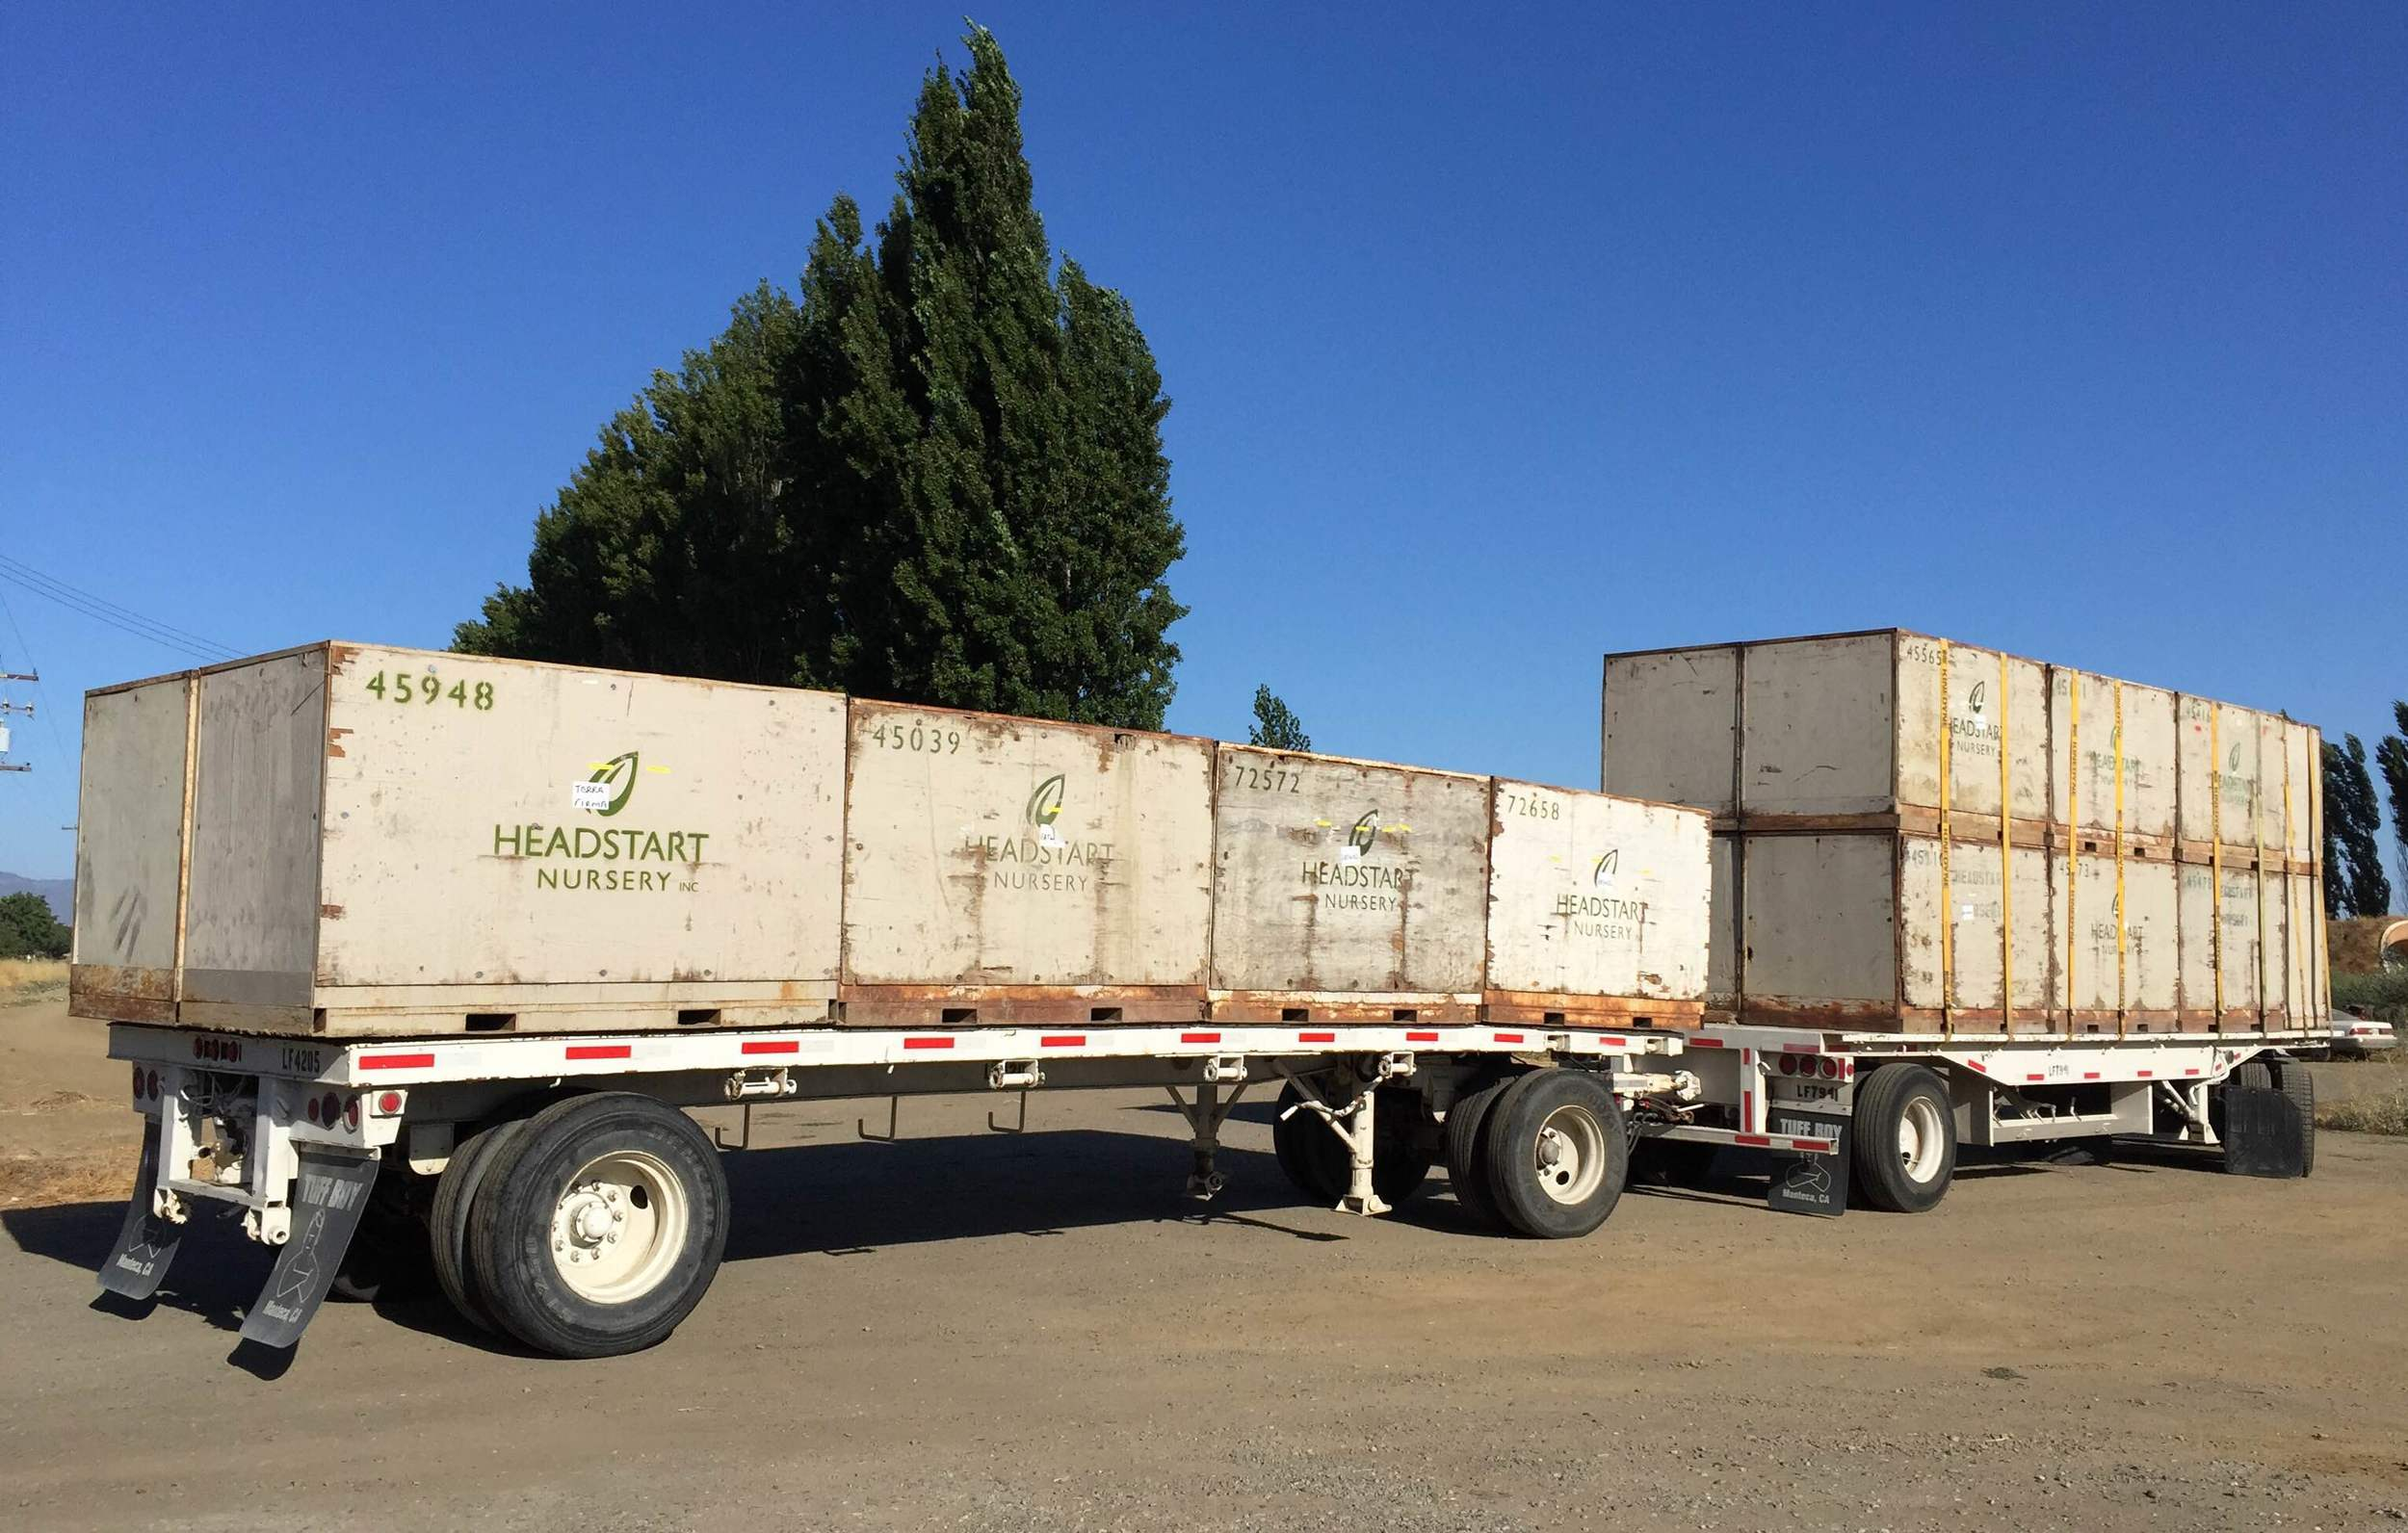 The Headstart delivery truck pulls into the farm early Monday morning so deliver transplants.